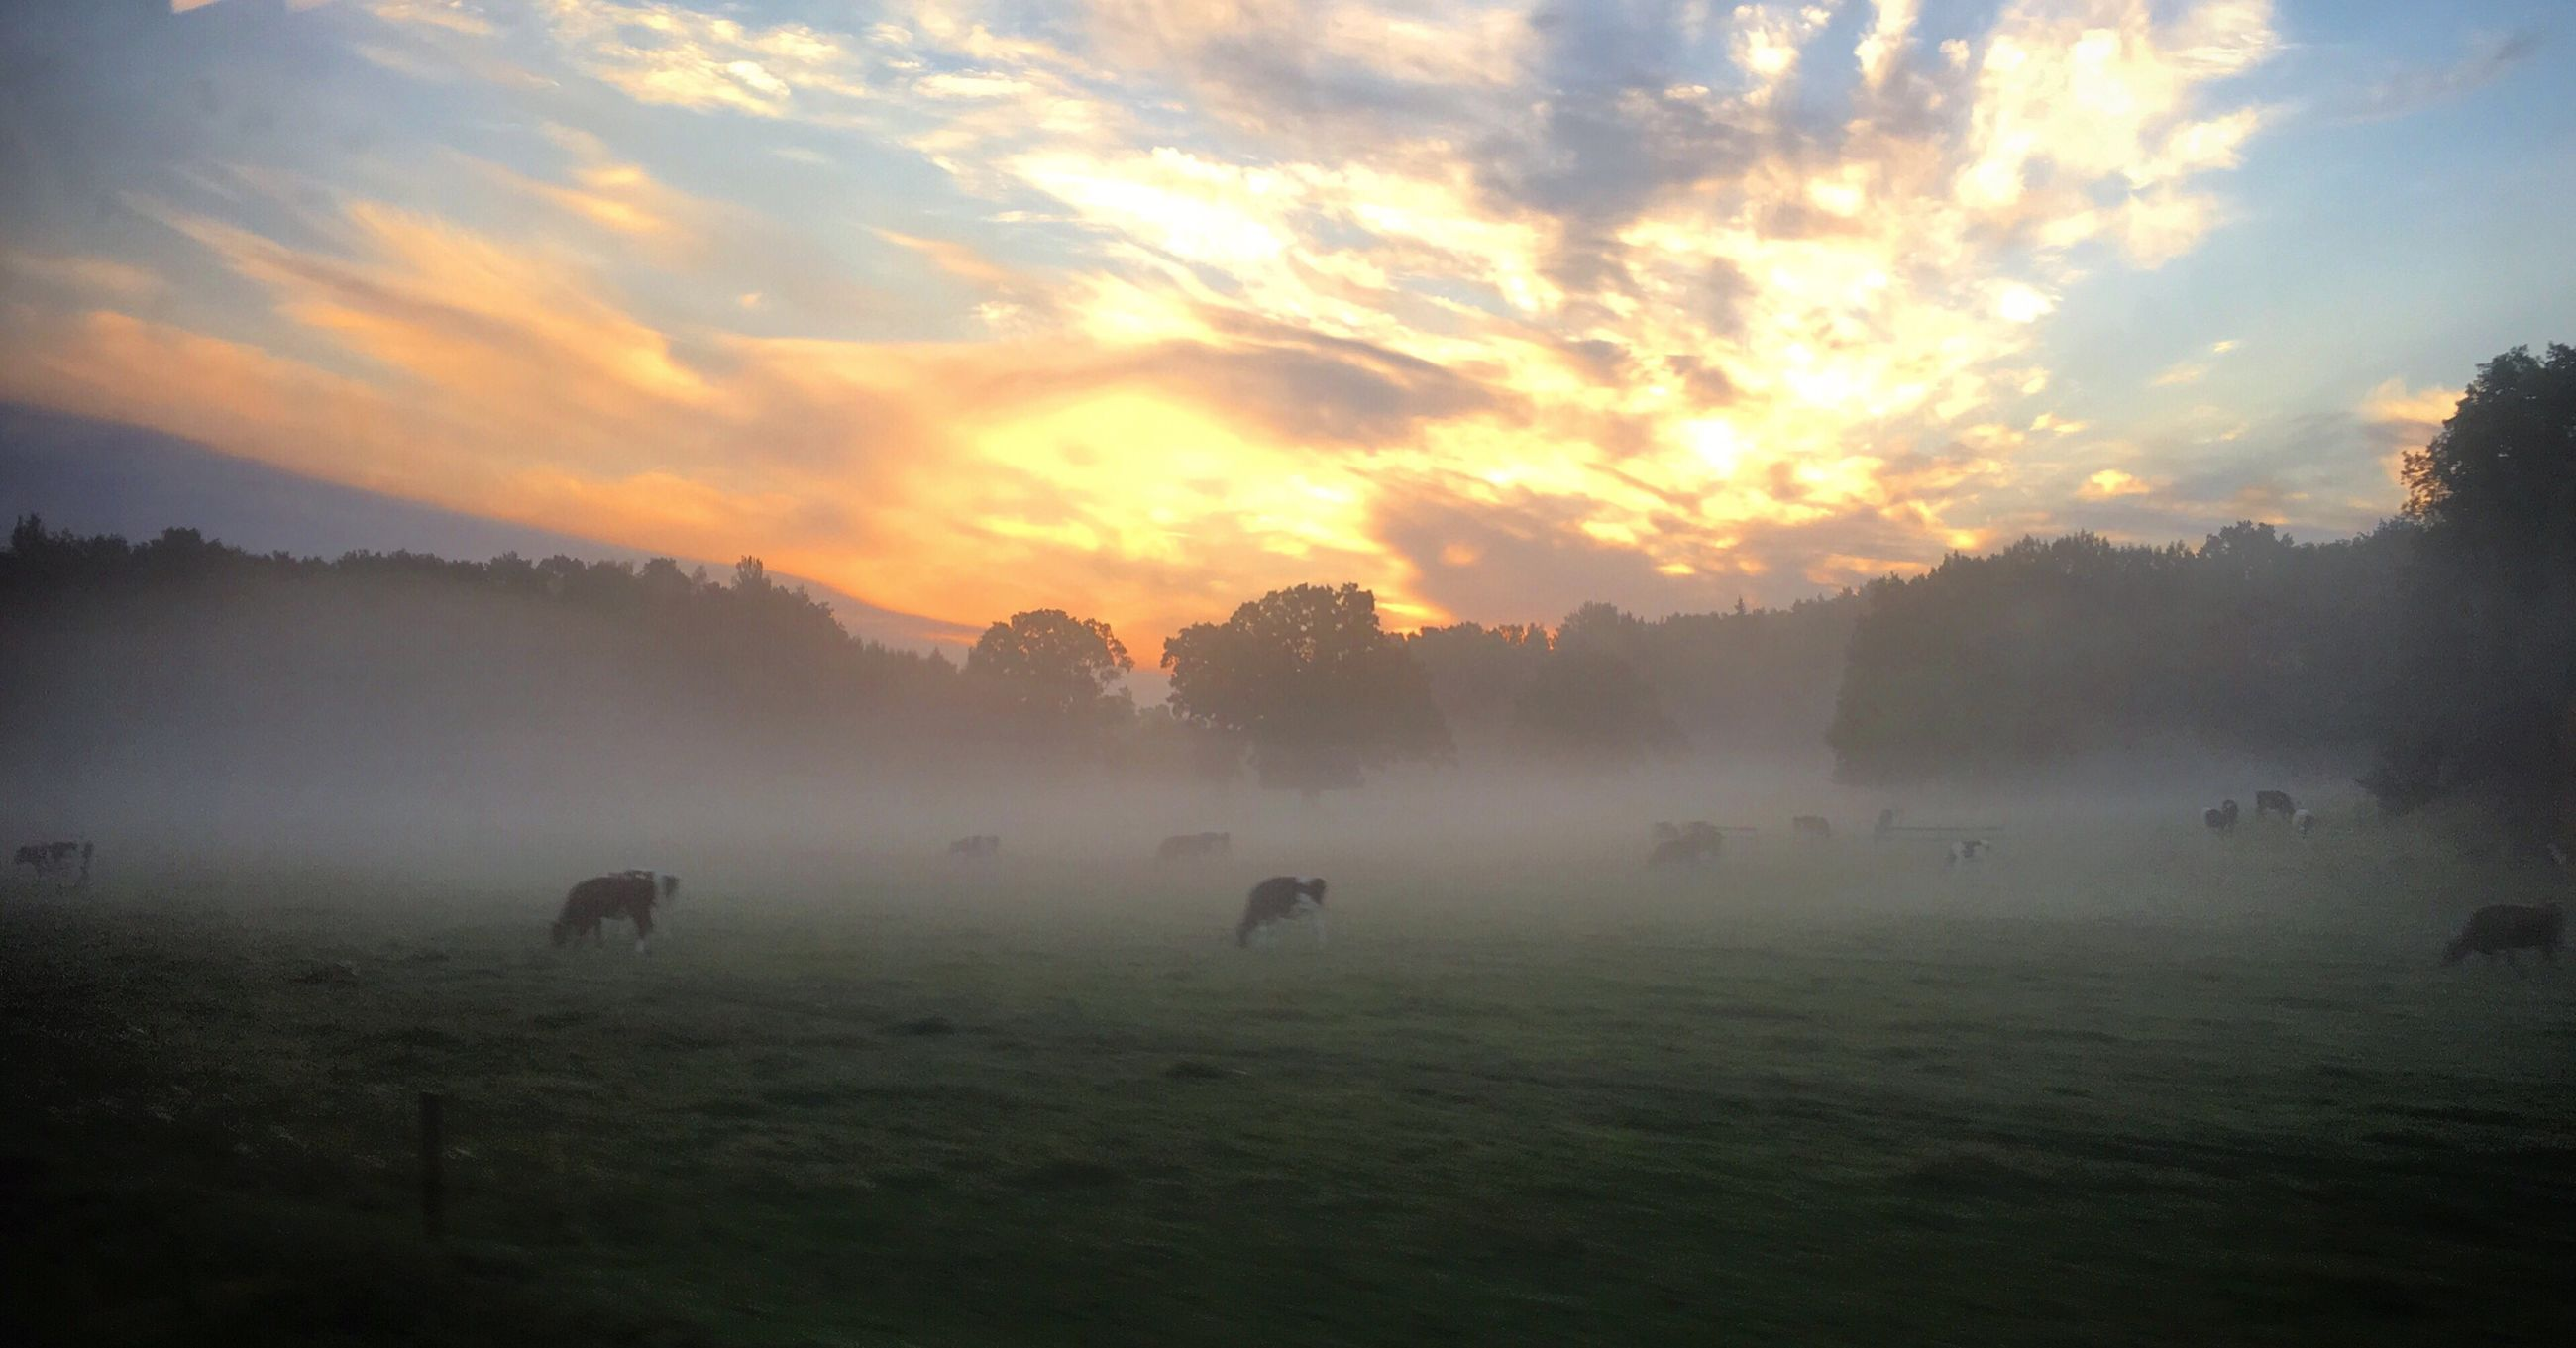 fog, weather, tranquil scene, tranquility, sunset, scenics, beauty in nature, cloud - sky, field, nature, sky, foggy, orange color, cloud, livestock, domestic animals, dramatic sky, cloudy, mist, sunrise - dawn, grassy, atmosphere, non-urban scene, atmospheric mood